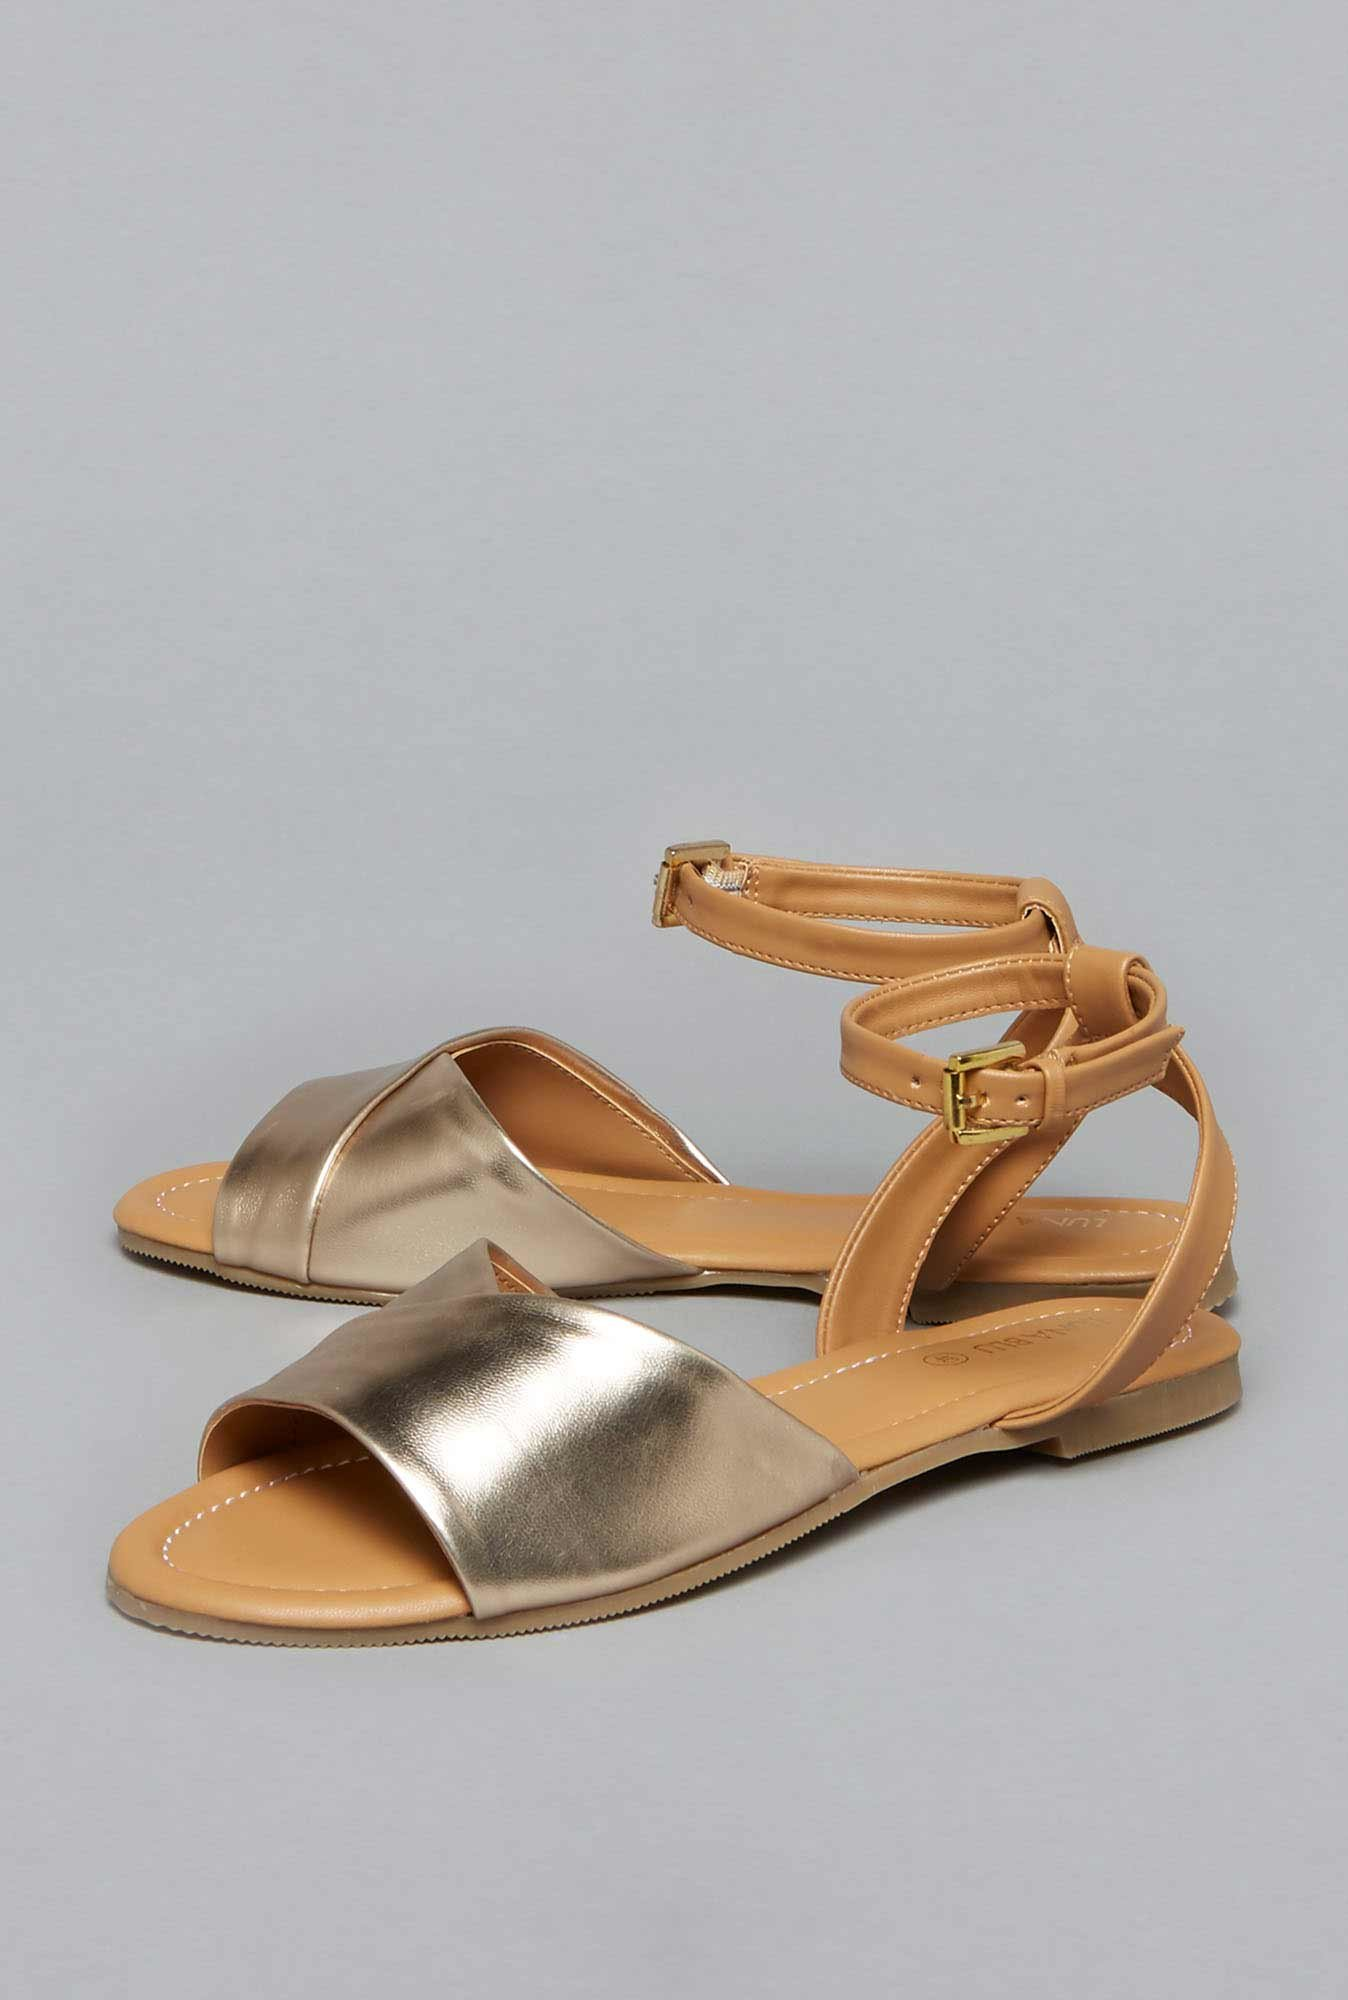 Gold For Luna Cliq Tata Westside At Buy Blu Sandals Women Online By N0wOkXZnP8